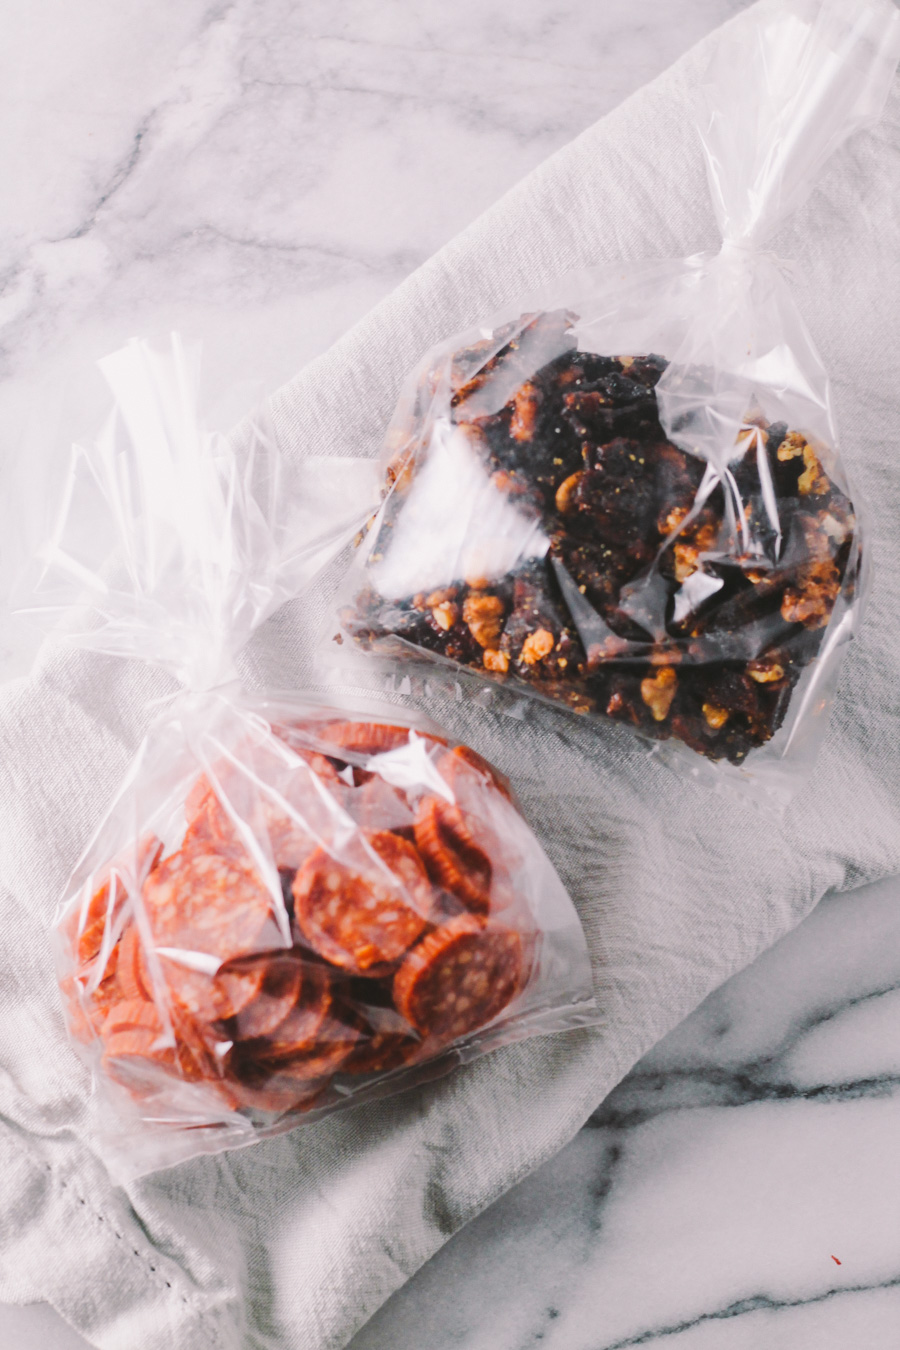 homemade beer gift basket essential #3: bar snacks - spicy candied bacon nuts & spicy salami | treat the beer lover in your life with a homemade beer gift basket this holiday season with the plays well with butter holiday gift basket series! pair a few great bottles of craft beer with a couple of festive beer glasses & a few handmade bar snacks & you'll totally knock the socks off of any beer nerd! | a plays well with butter holiday gift basket series homemade holiday gift basket for the beer lover in your life